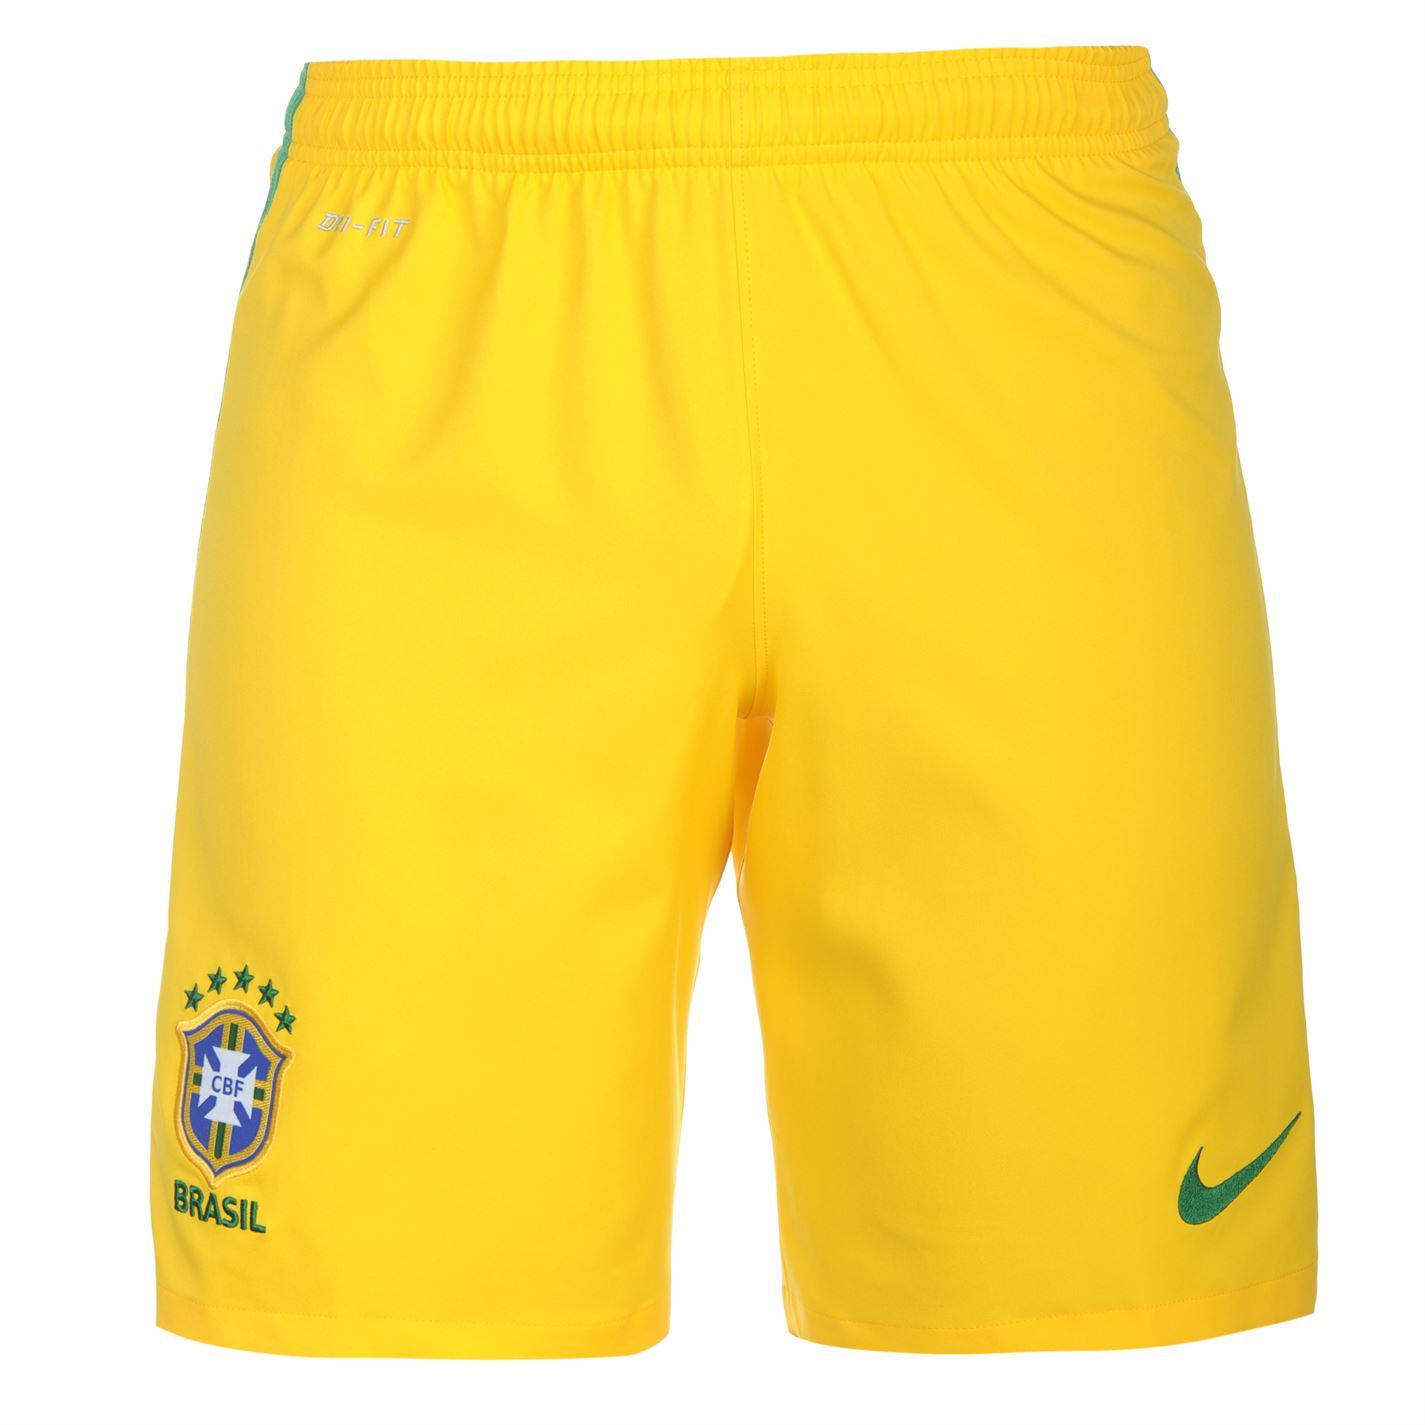 Nike Brazil Home Shorts 2016 Mens Yellow Football Soccer ...